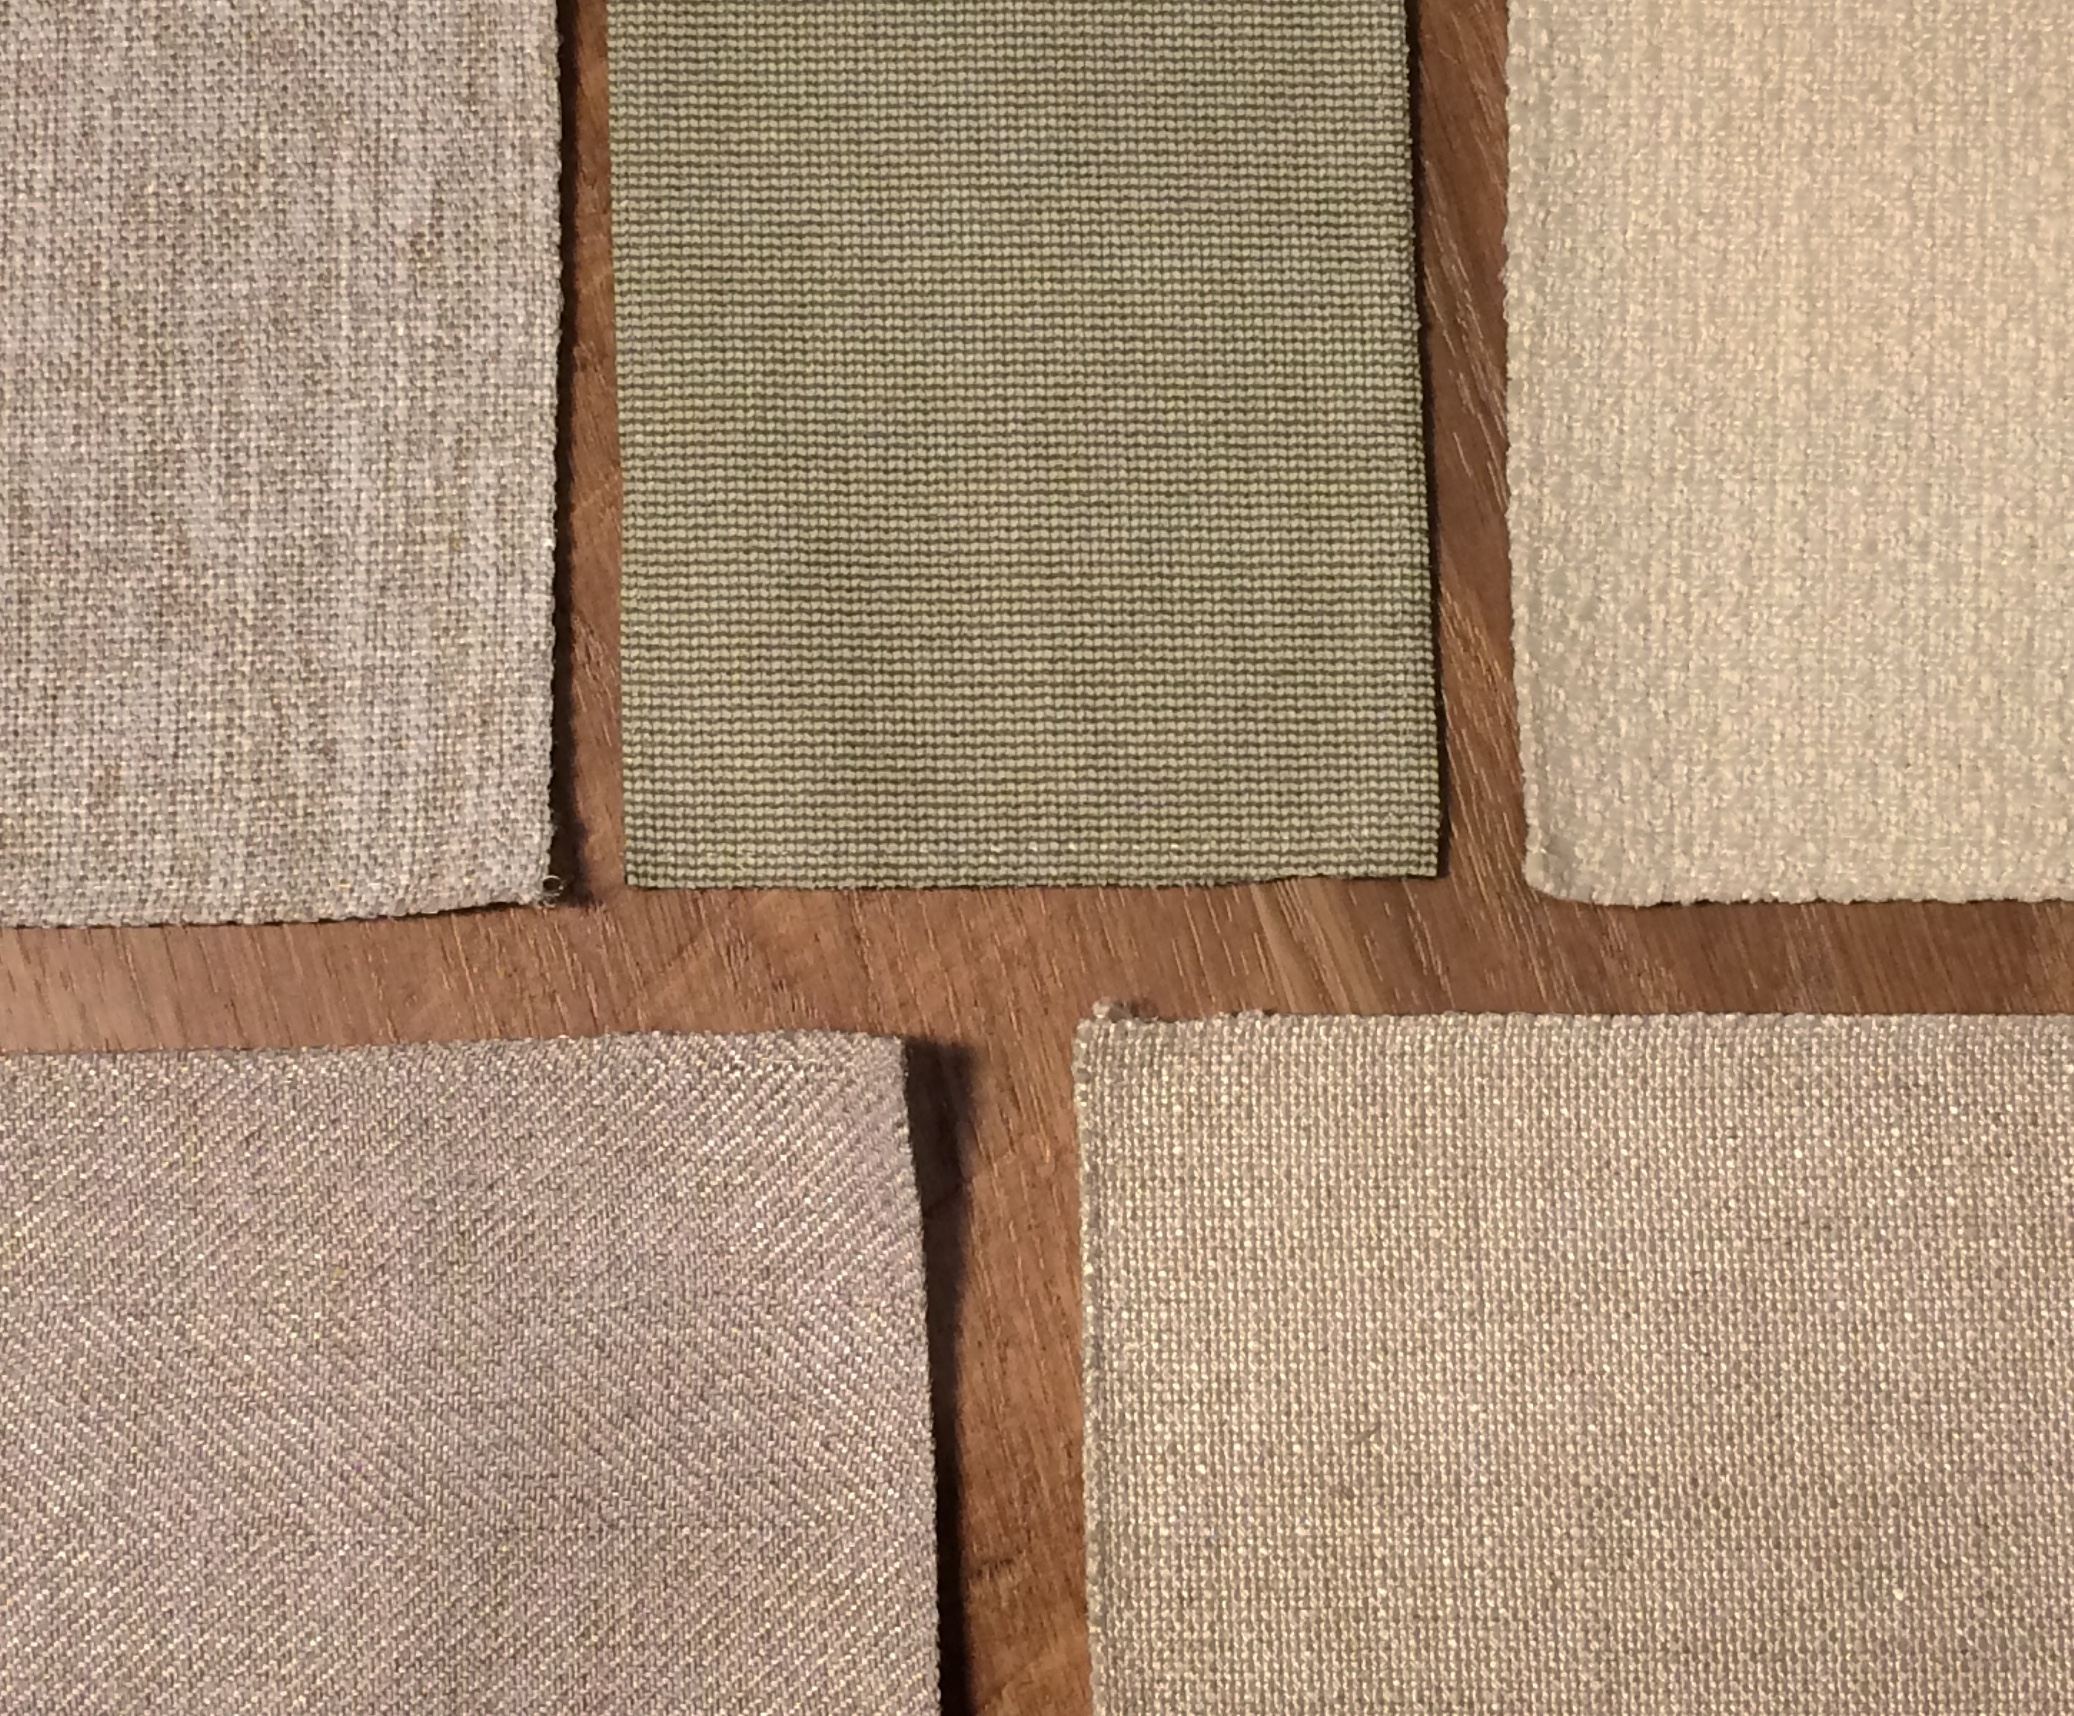 Interior Define swatches clockwise from top left: Wheat, Oyster, Vanilla, Natural, and Dune